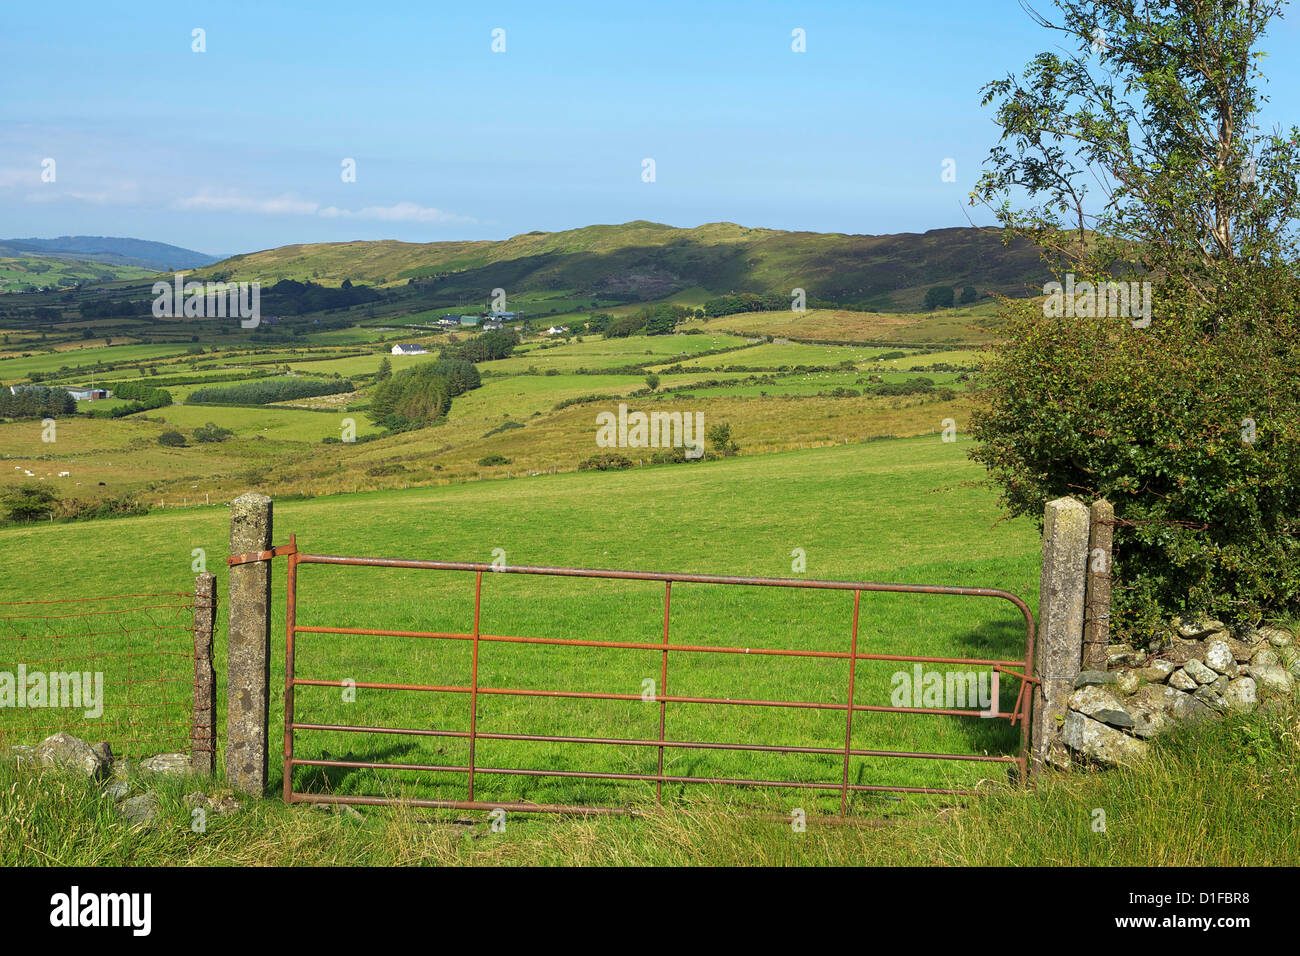 Mourne Mountains, County Down, Ulster, Northern Ireland, United Kingdom, Europe - Stock Image